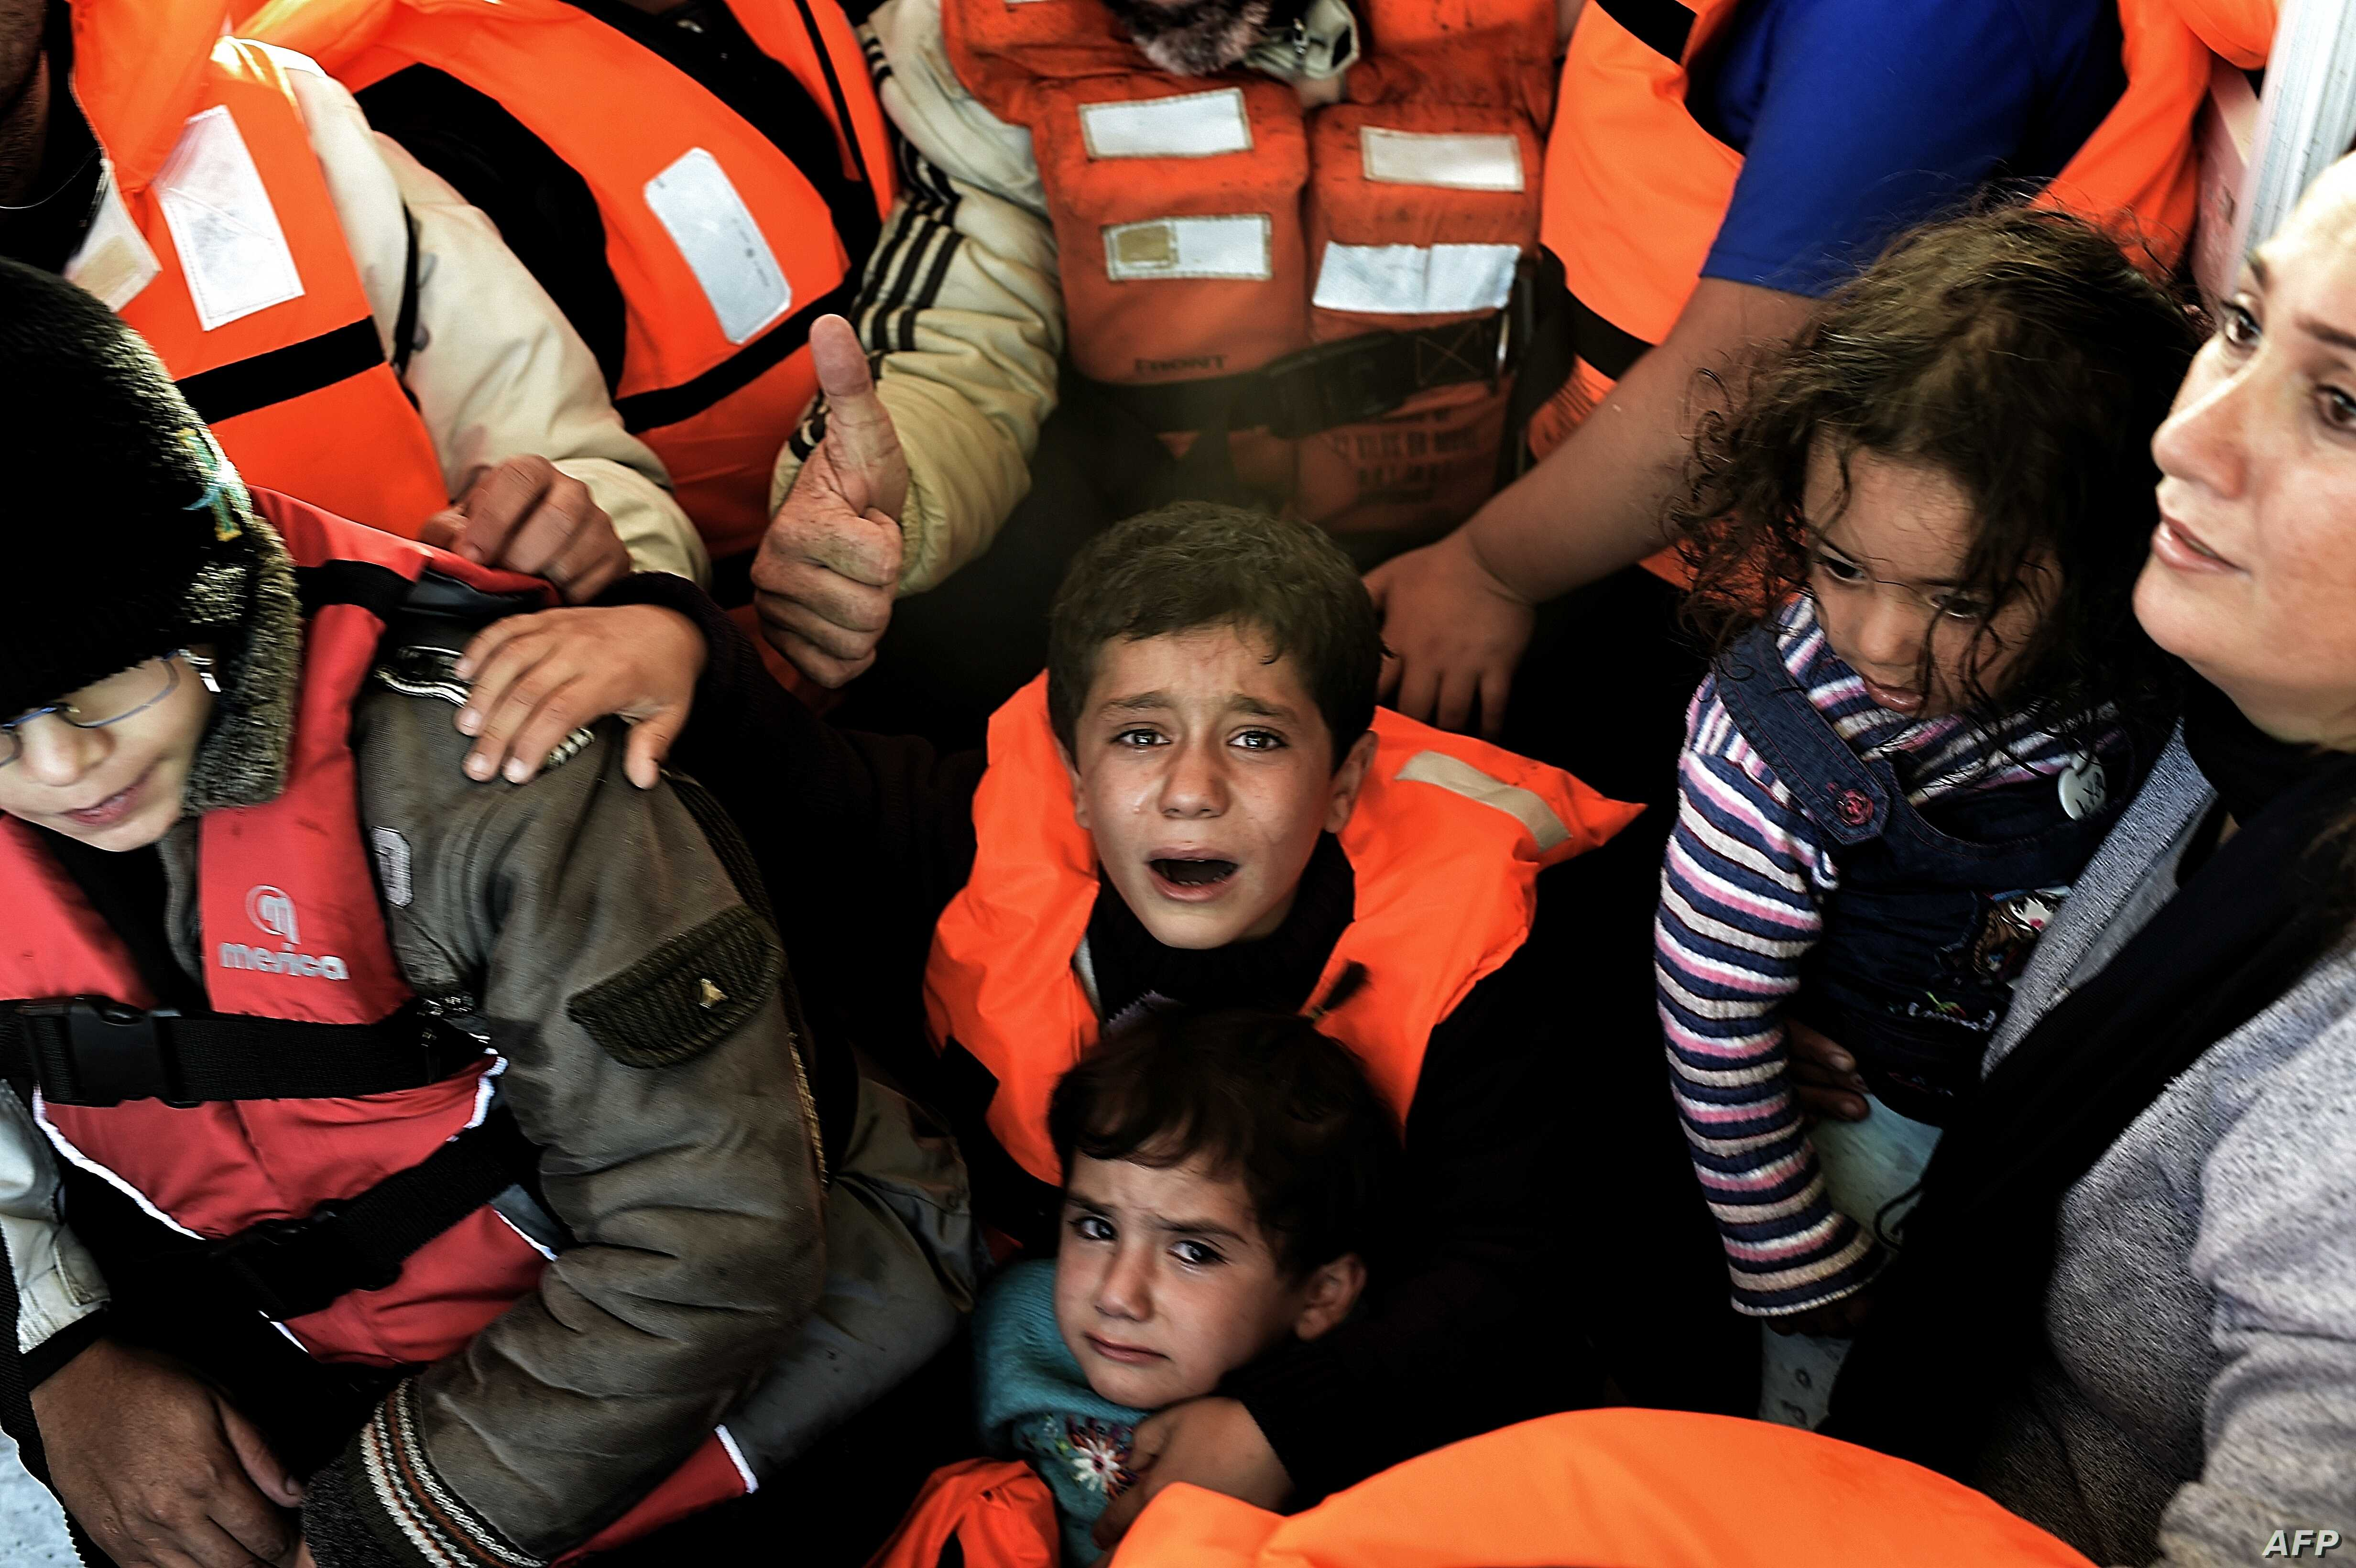 Syrian Kurdish refugees are rescued by Greek fishermen as the boat they were on sinks off the Greek island of Lesbos after crossing the Aegean Sea from Turkey, Oct. 30, 2015.